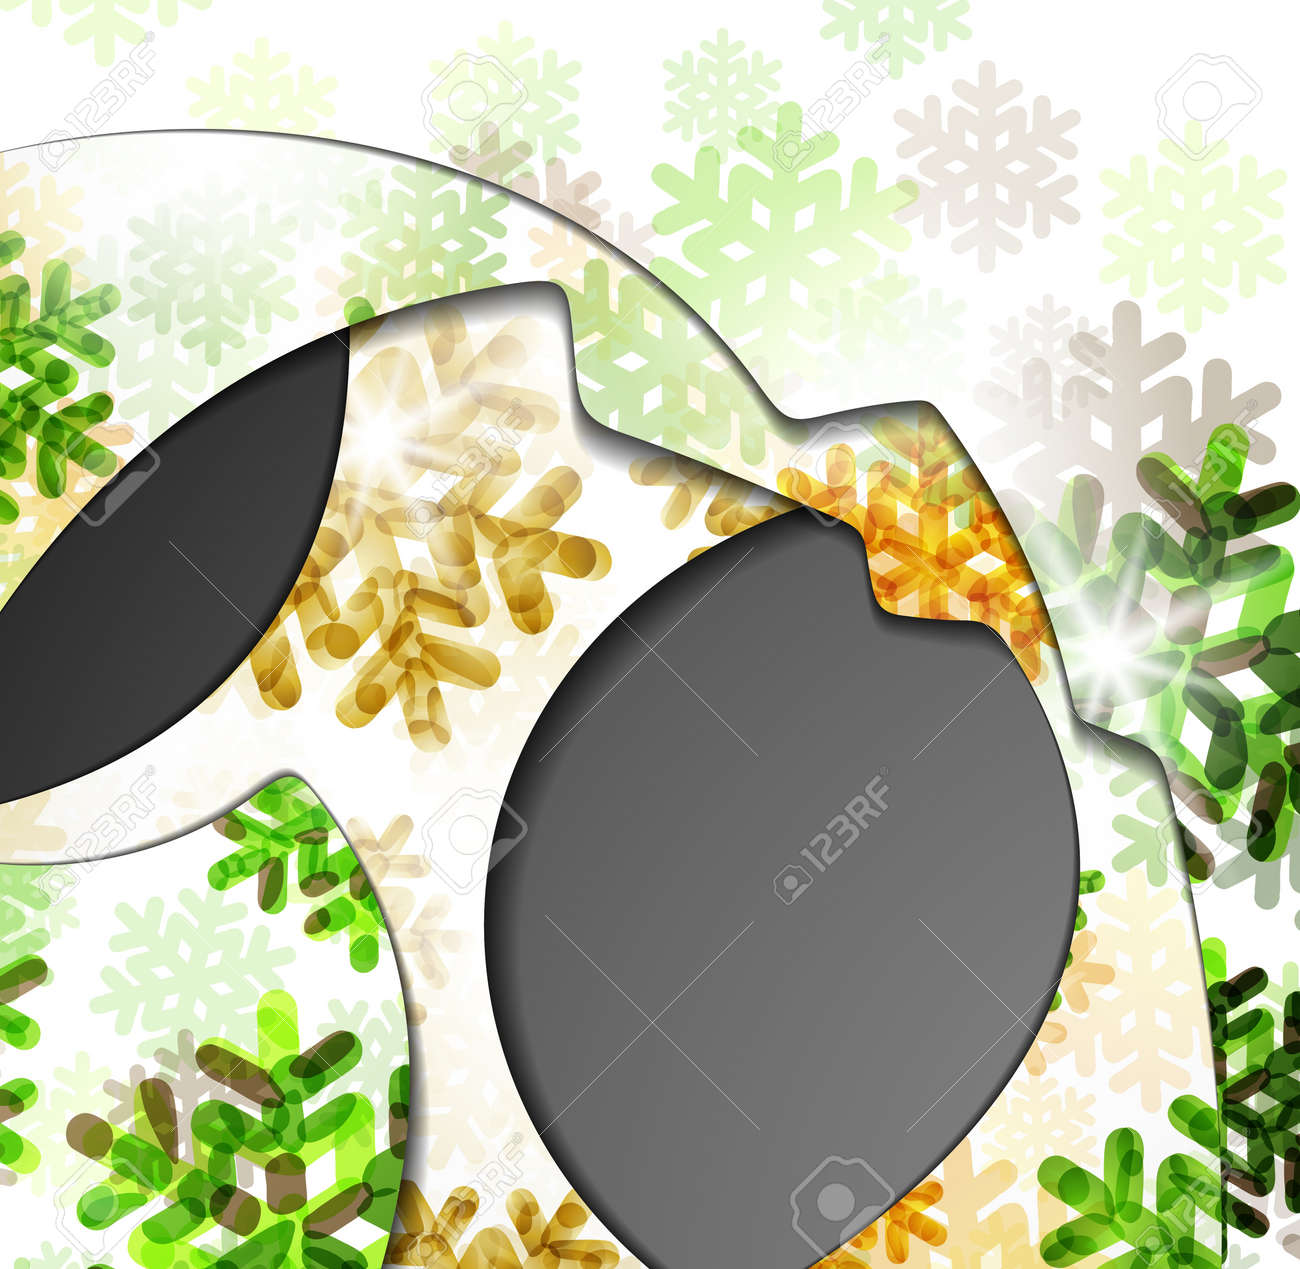 layered abstract background with snowflakes image Stock Vector - 16865944